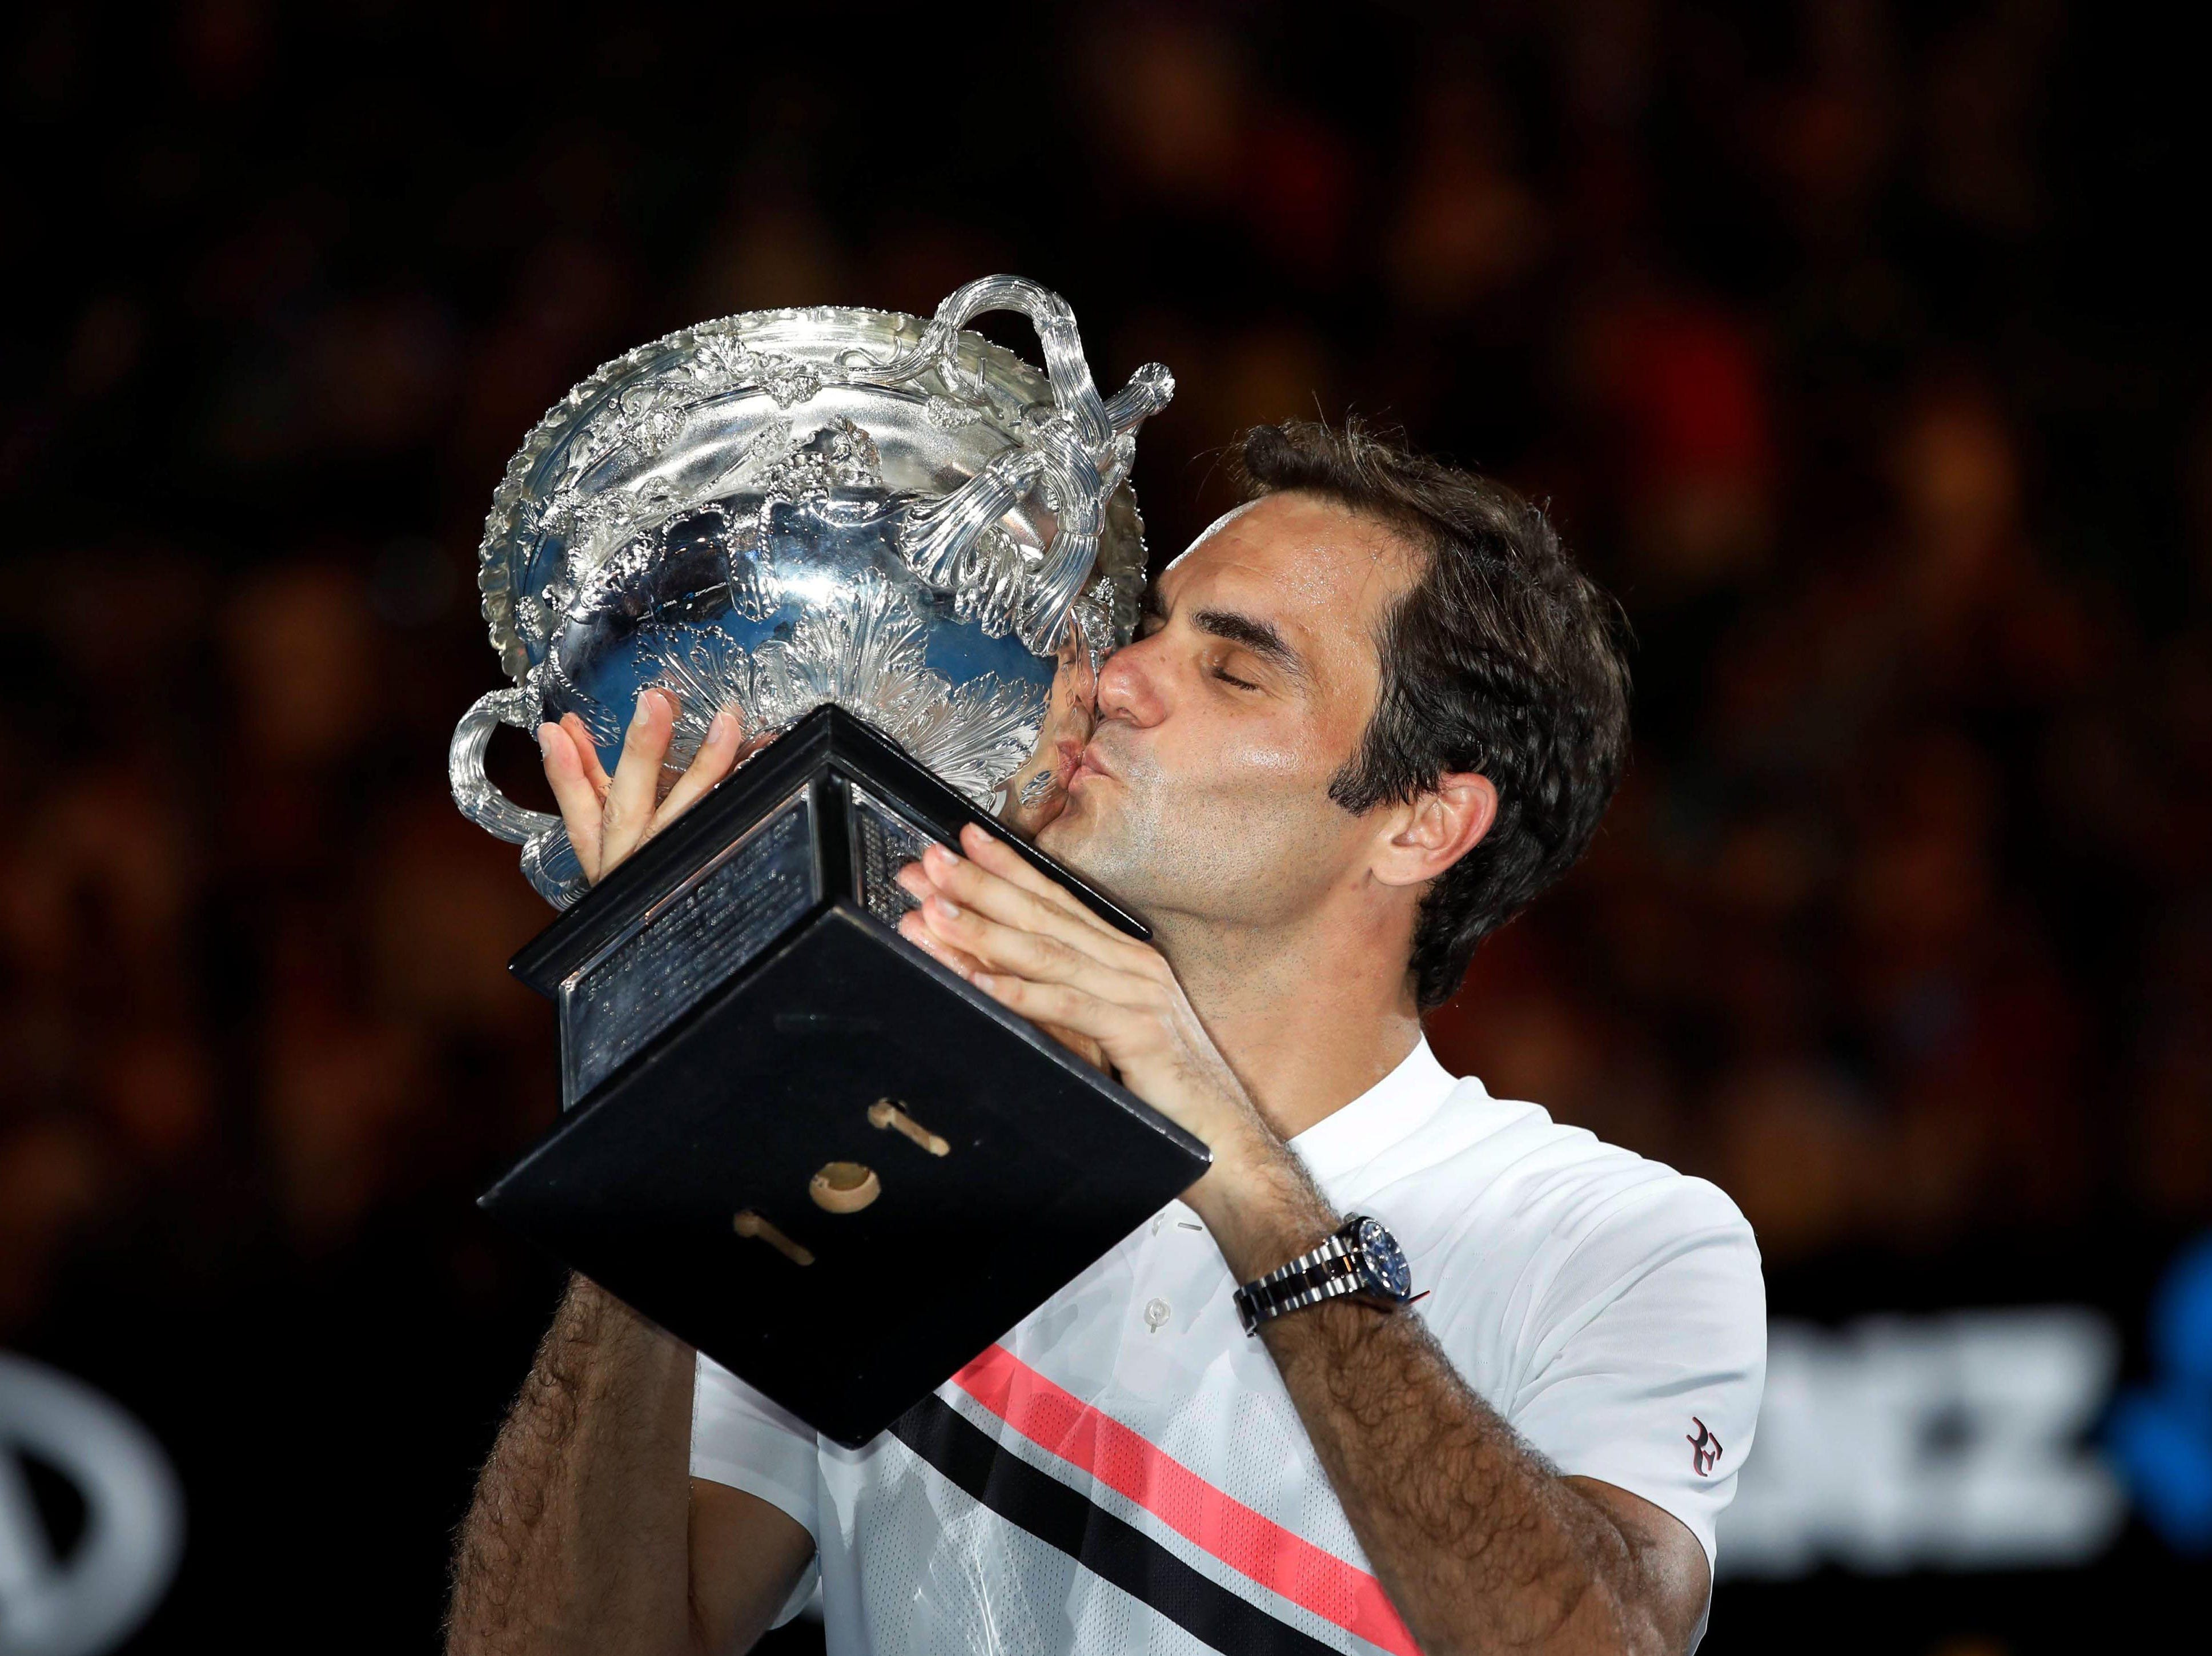 Jan. 28: Roger Federer celebrates after defeating Marin Cilic in the Australian Open final.